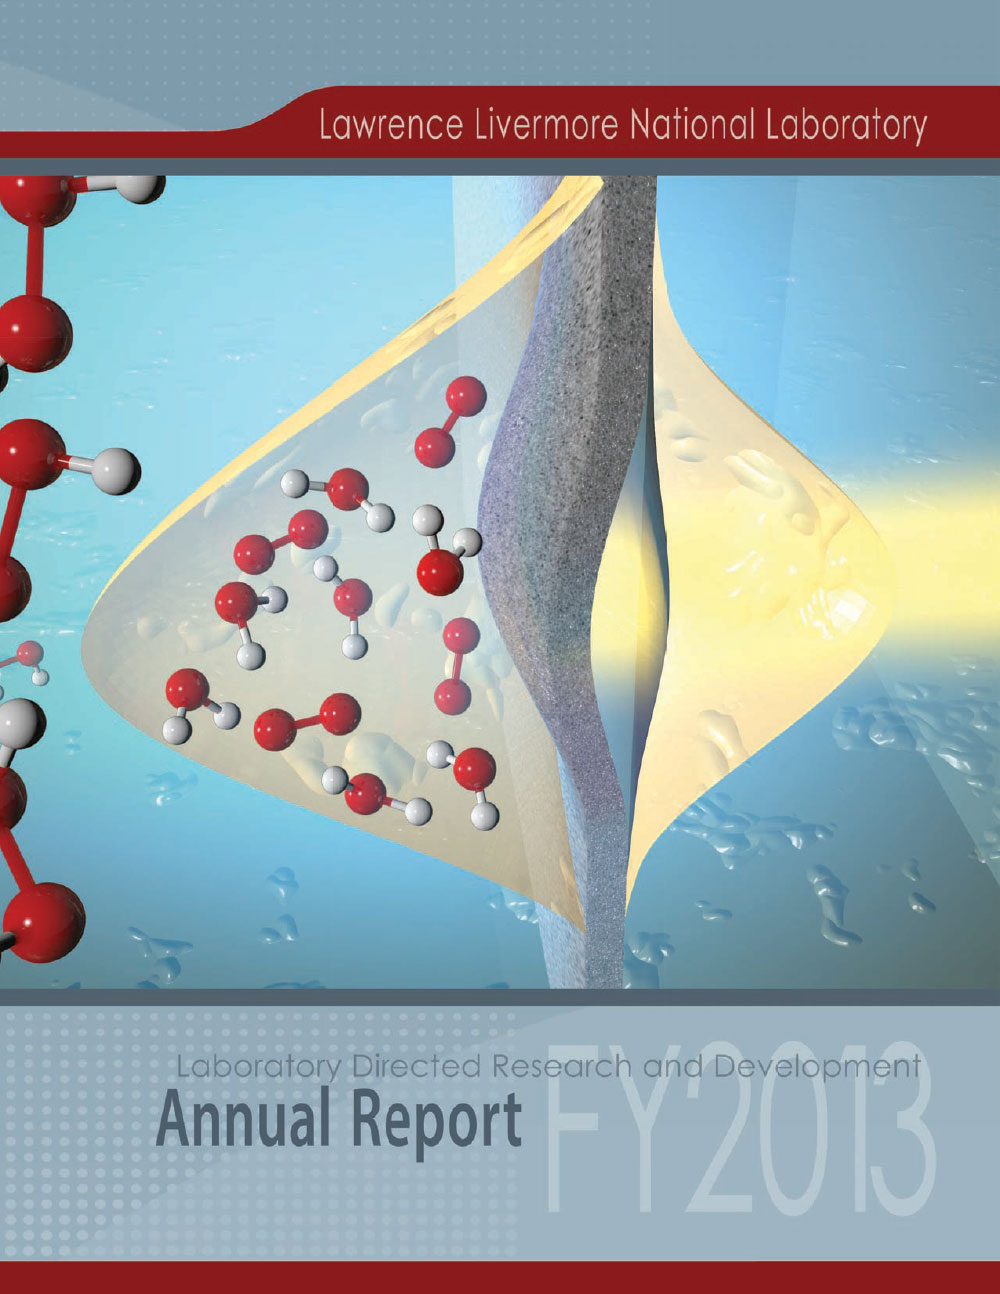 CoverofLLNLFY2013AnnualReport